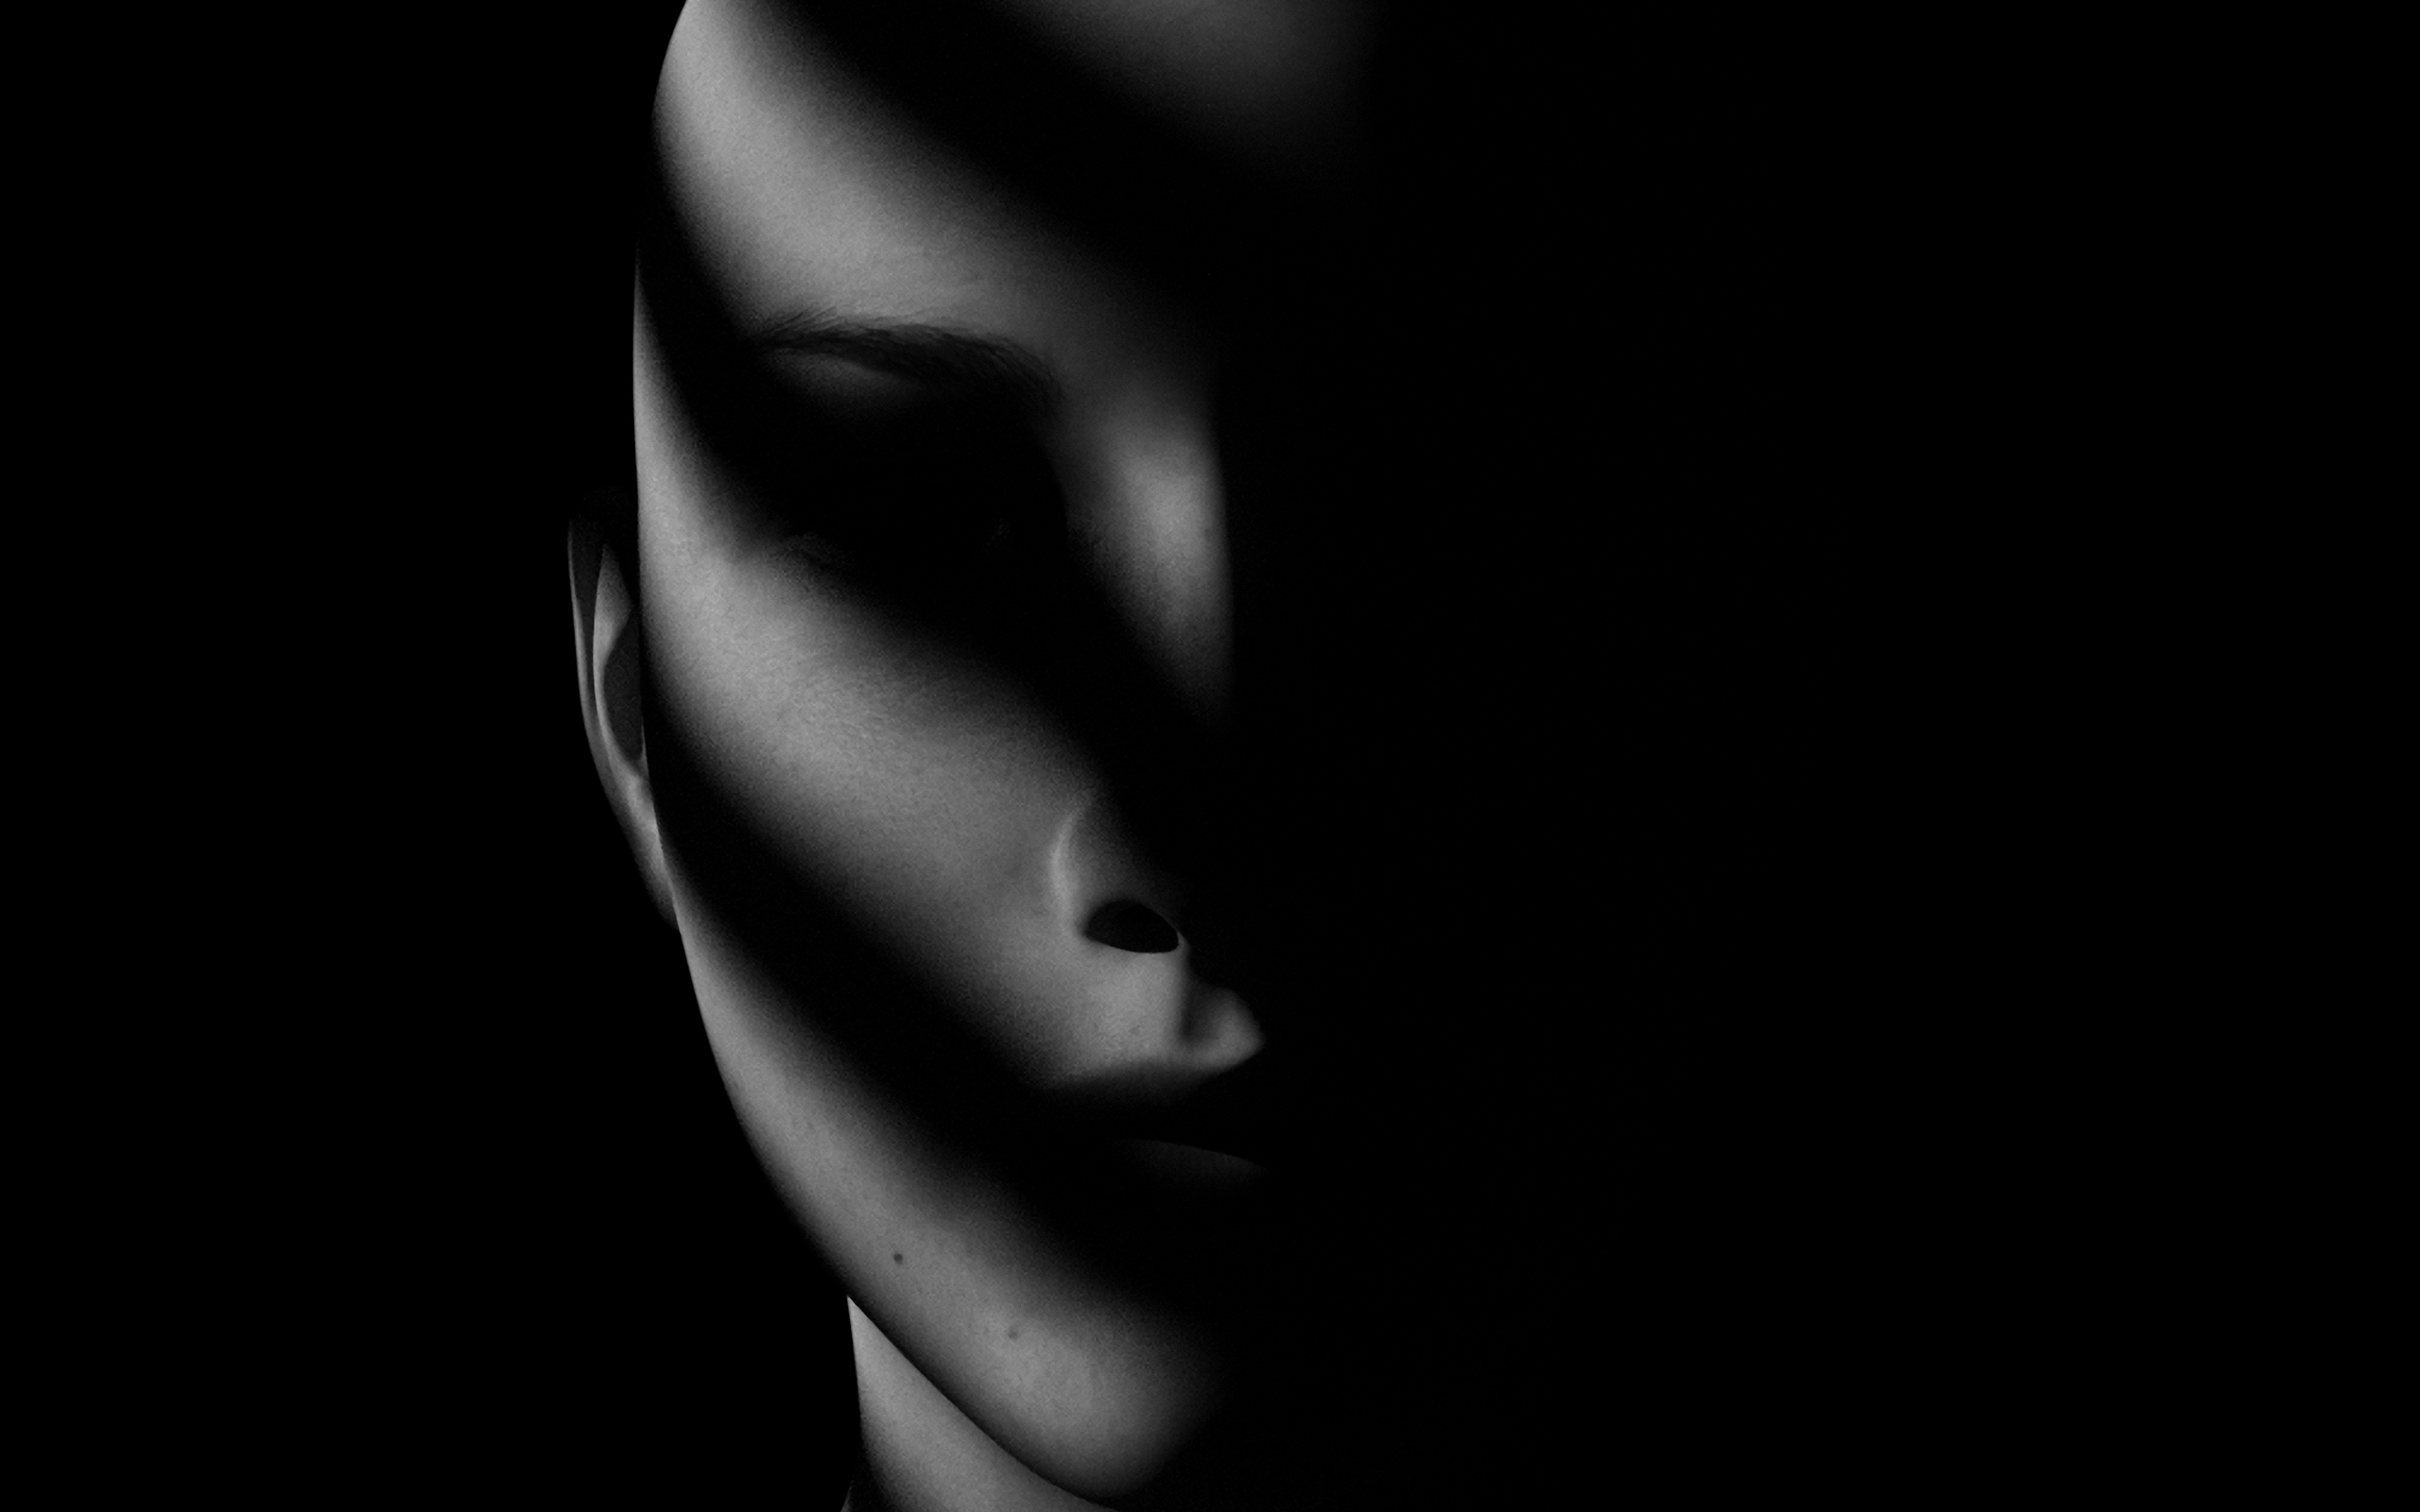 General 2560x1600 face dark shadow women creepy